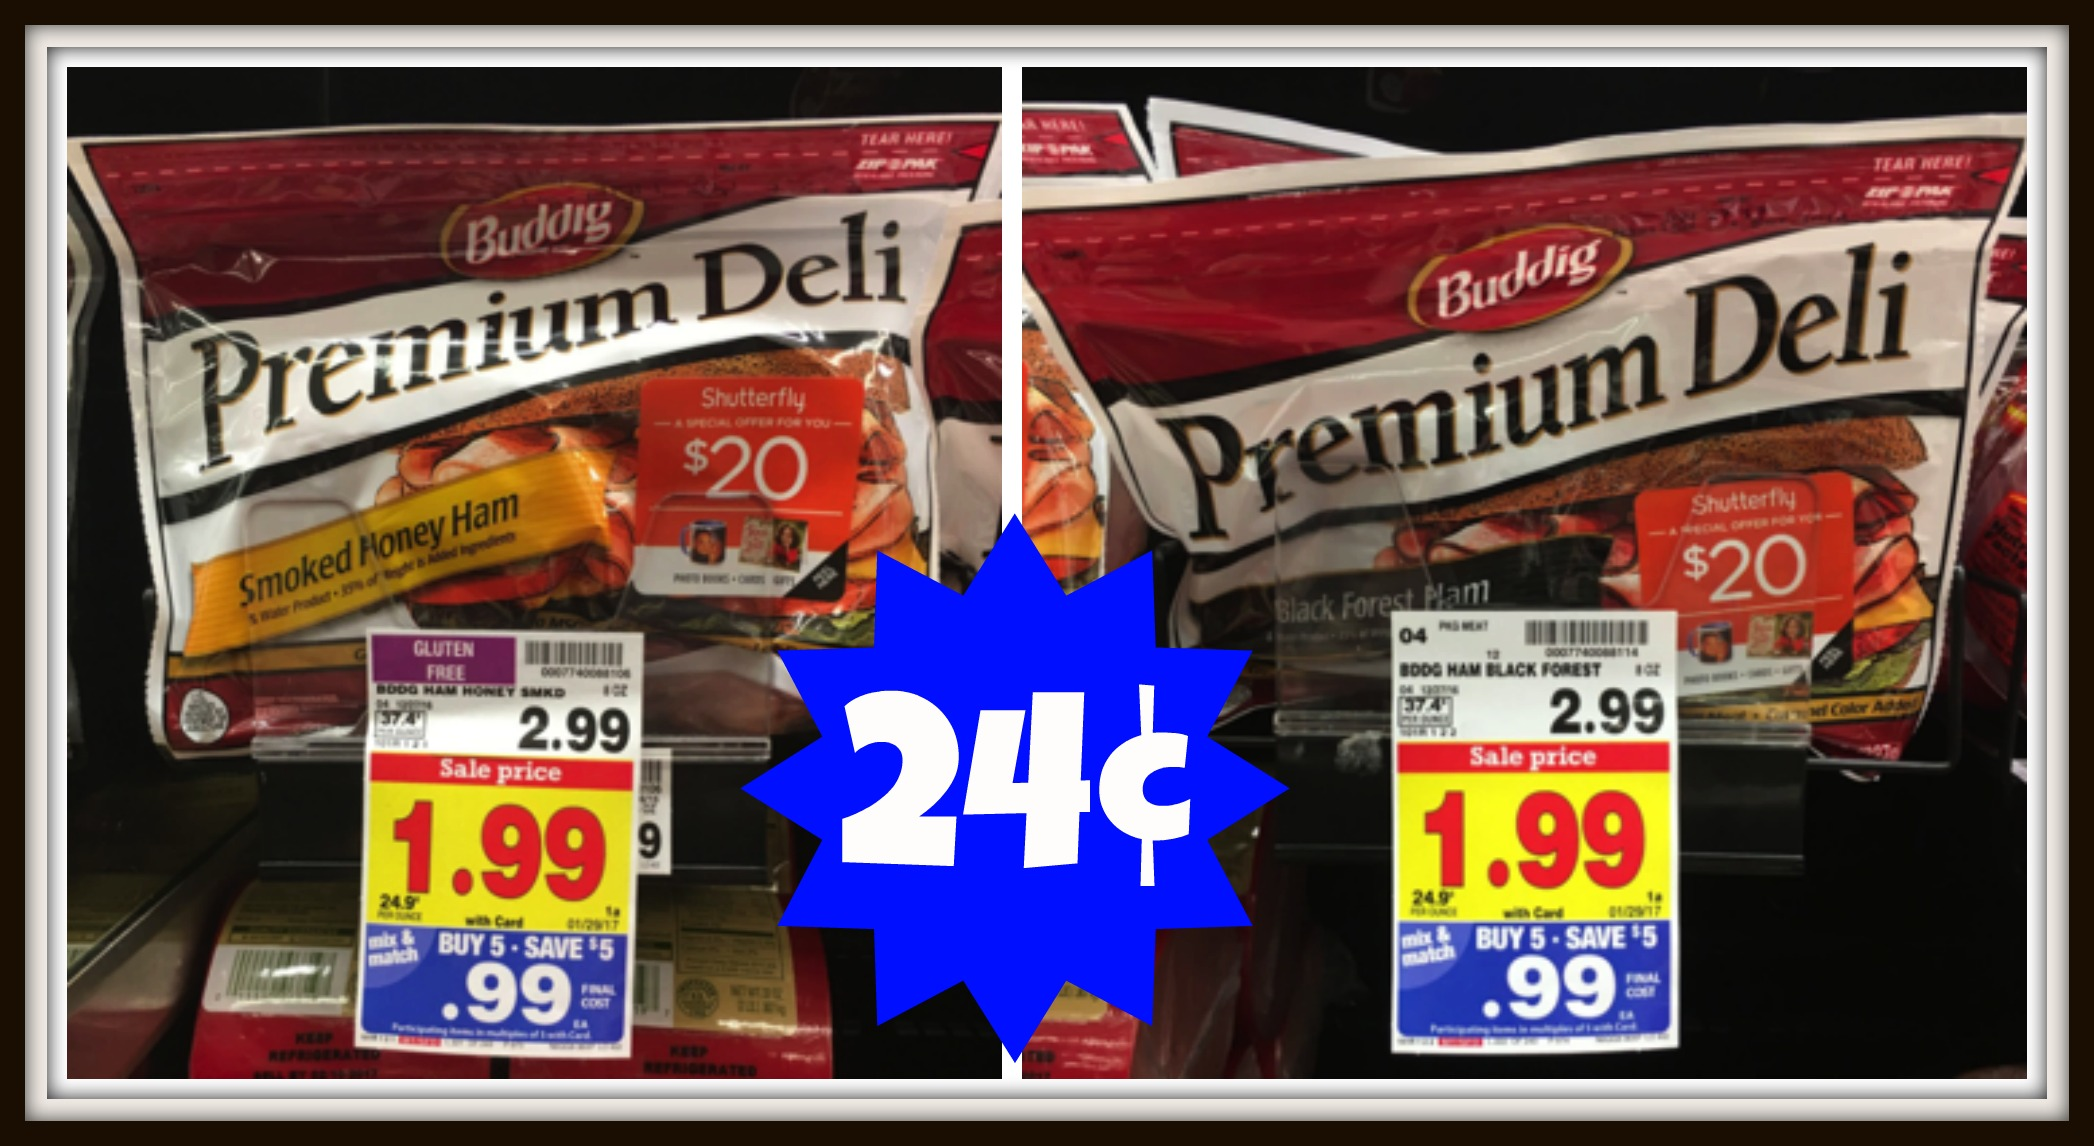 Buddig Premium Deli Lunchmeat Just 24 at Kroger Reg Price 299